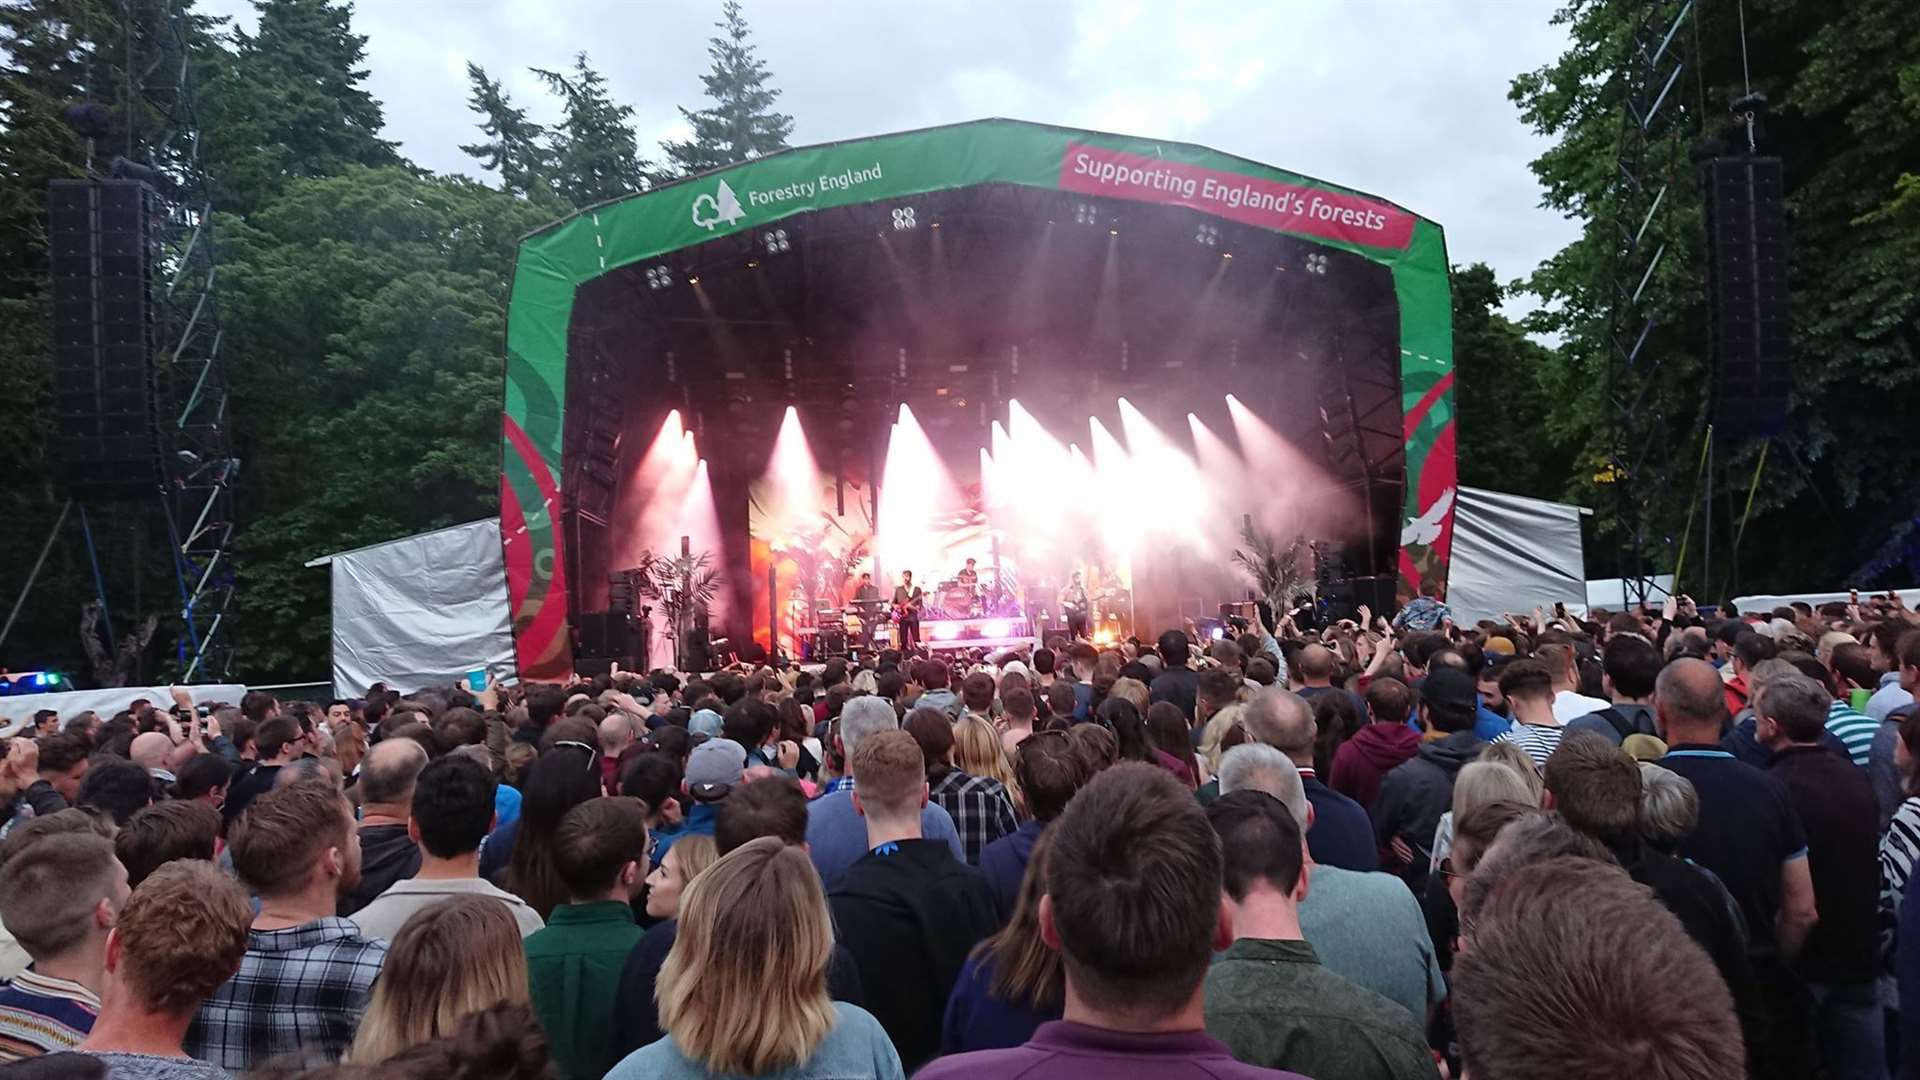 Foals at Thetford Forest, Thursday June 20, 2019